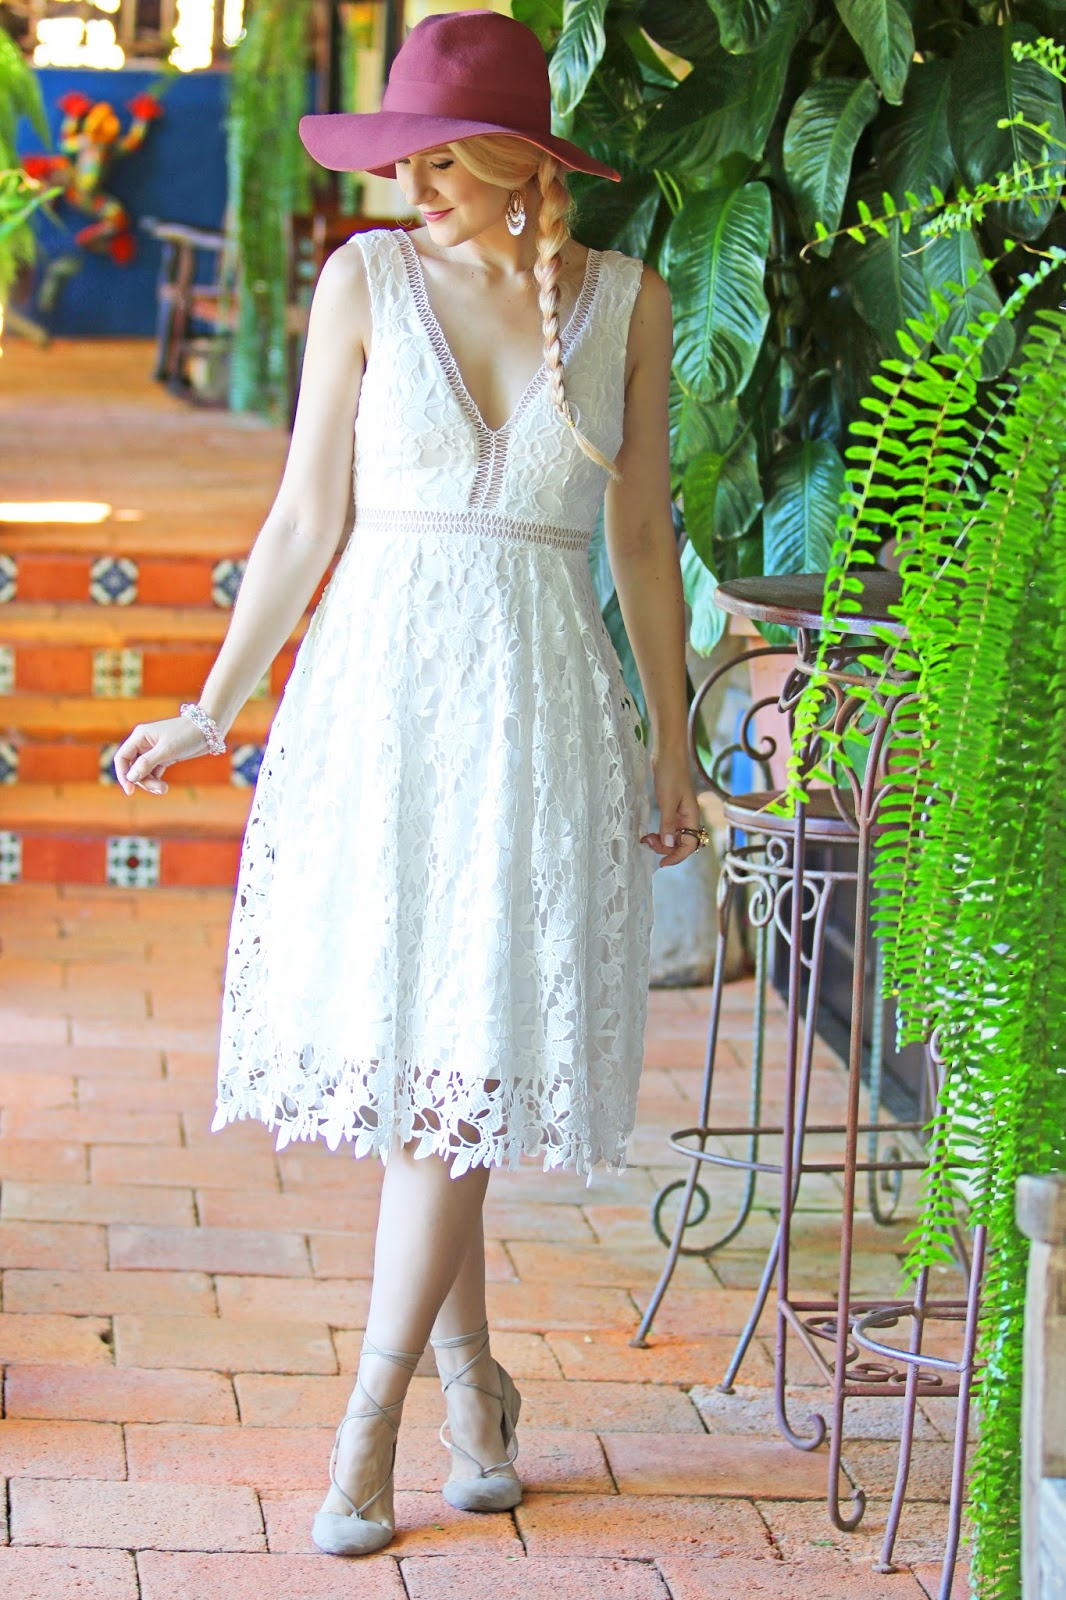 Pretty white lace dress outfit